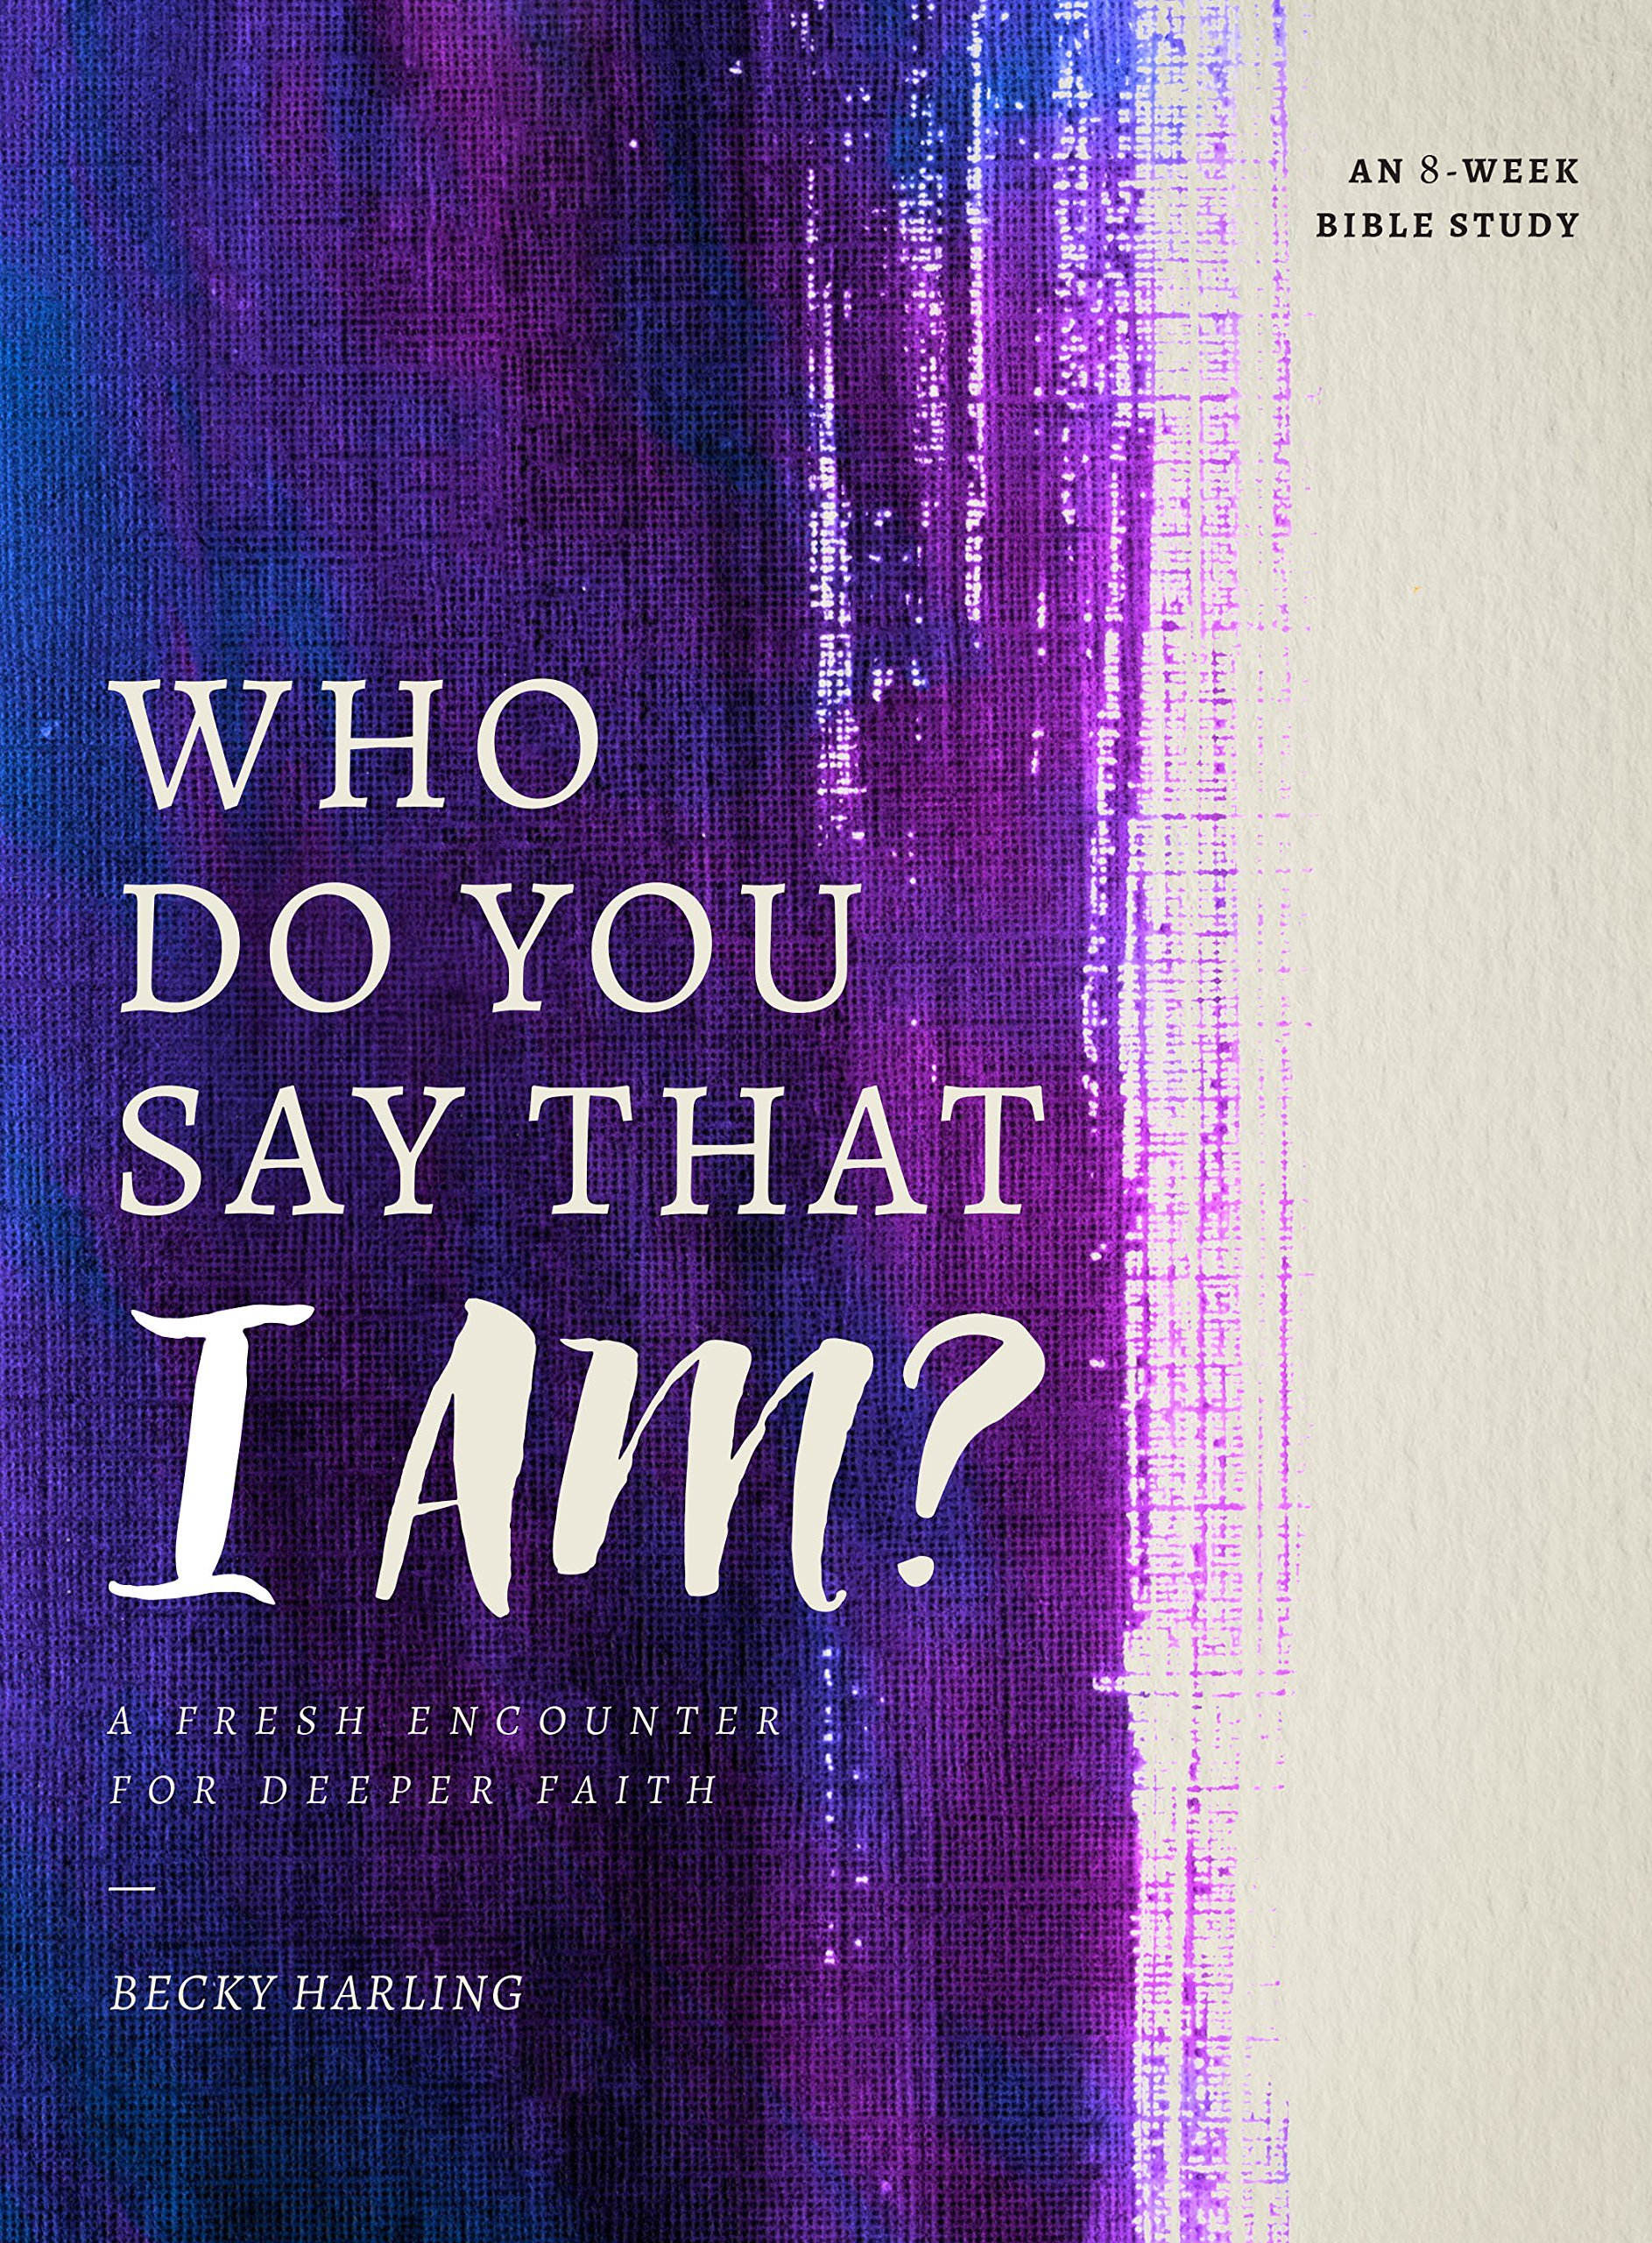 Cover of Becky Harling's Book, Who Do You Say that I Am?